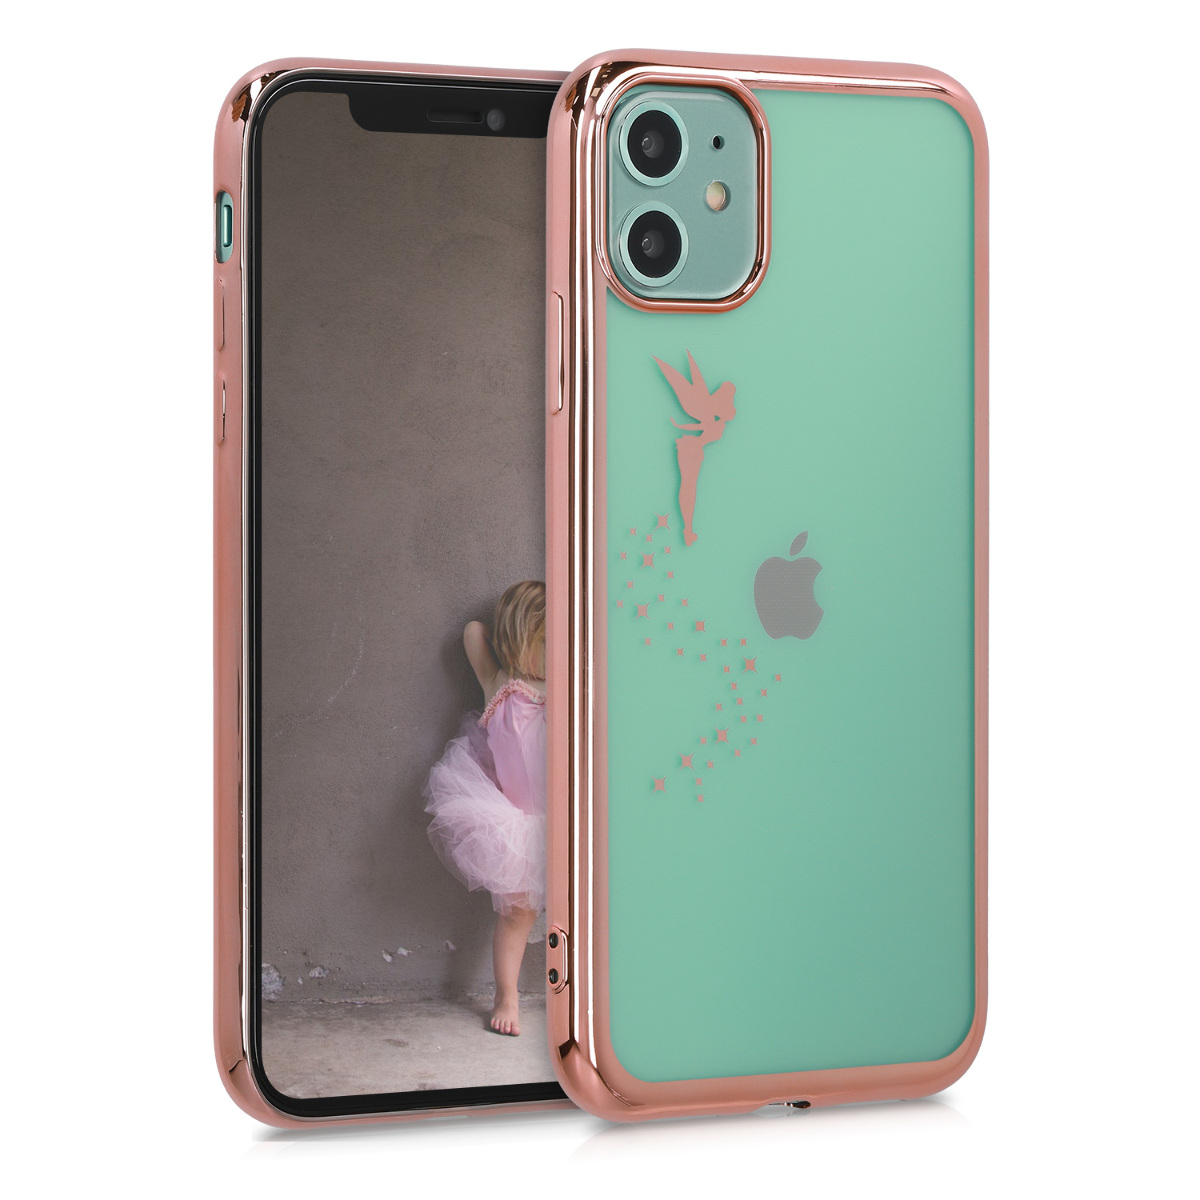 KW Θήκη Σιλικόνης Apple iPhone 11 - Fairy - Rose Gold / Transparent (50886.01)